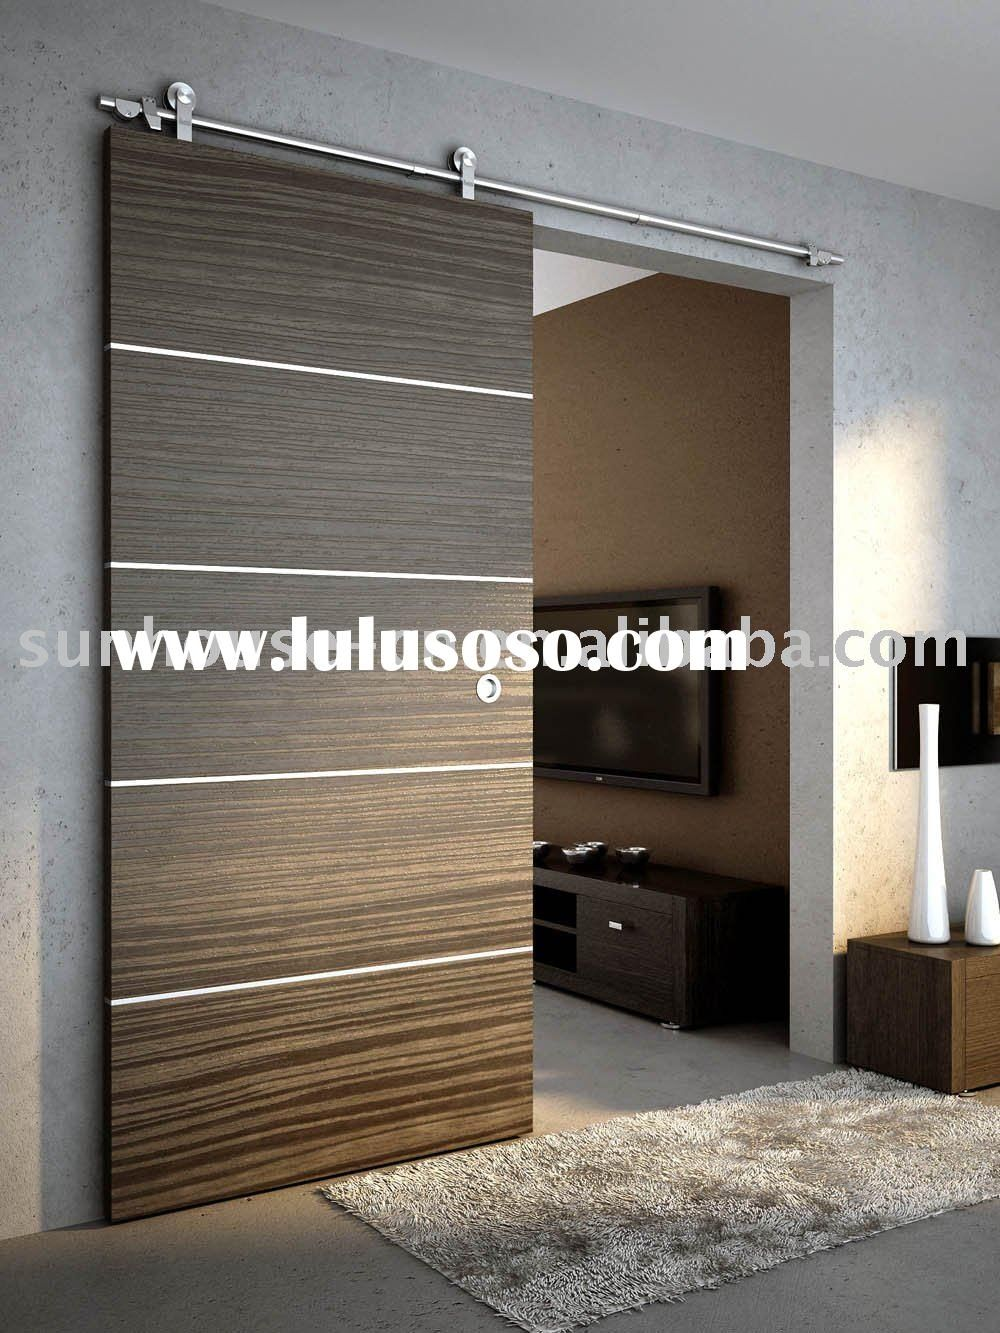 Wood Sliding Door Sliding Door Fitting Home Decor